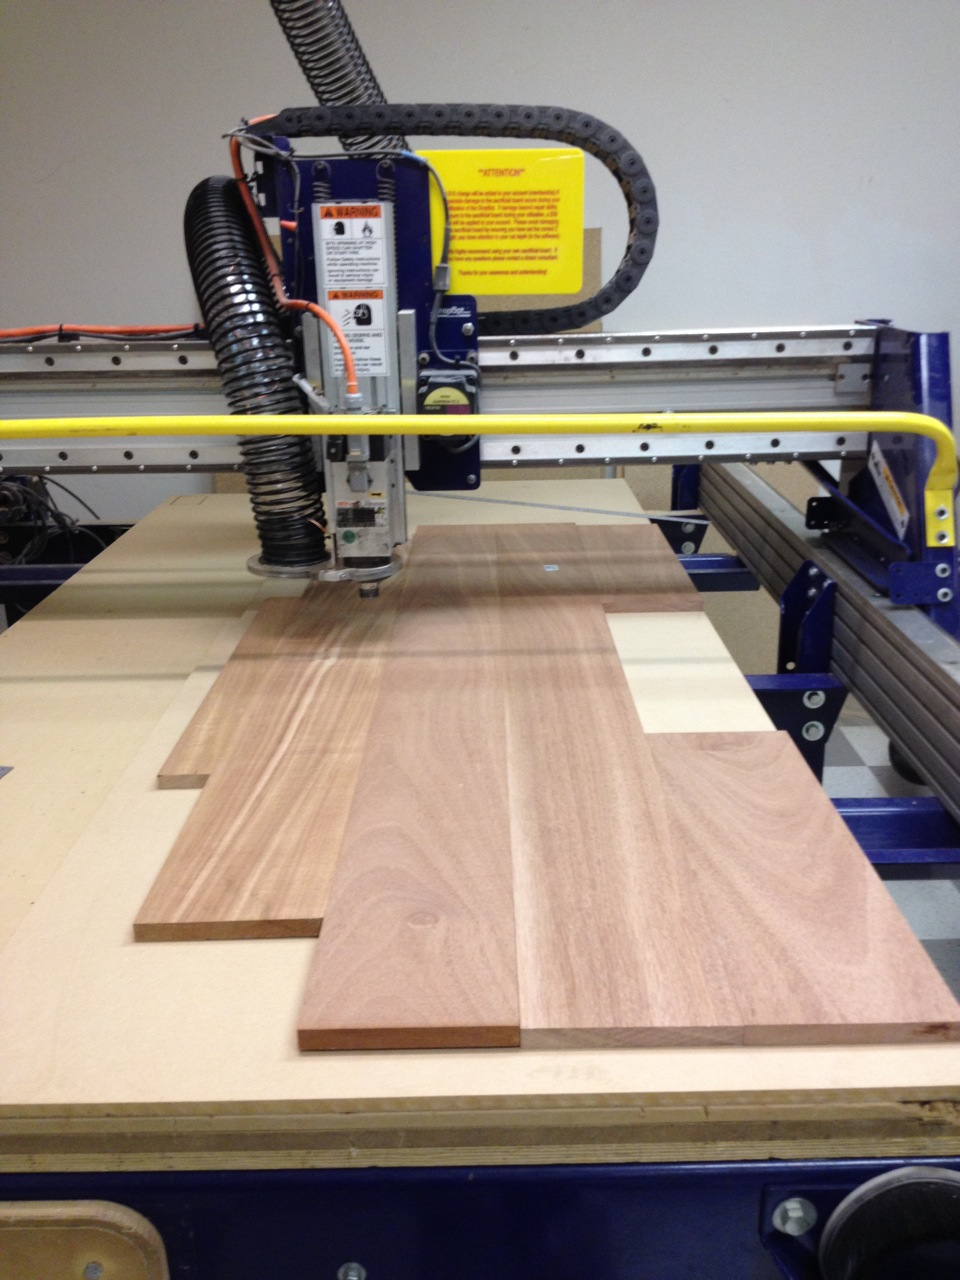 Having visualized the placement of the mahogany in VCarve, I was able to precisely place the boards on the Shopbot.